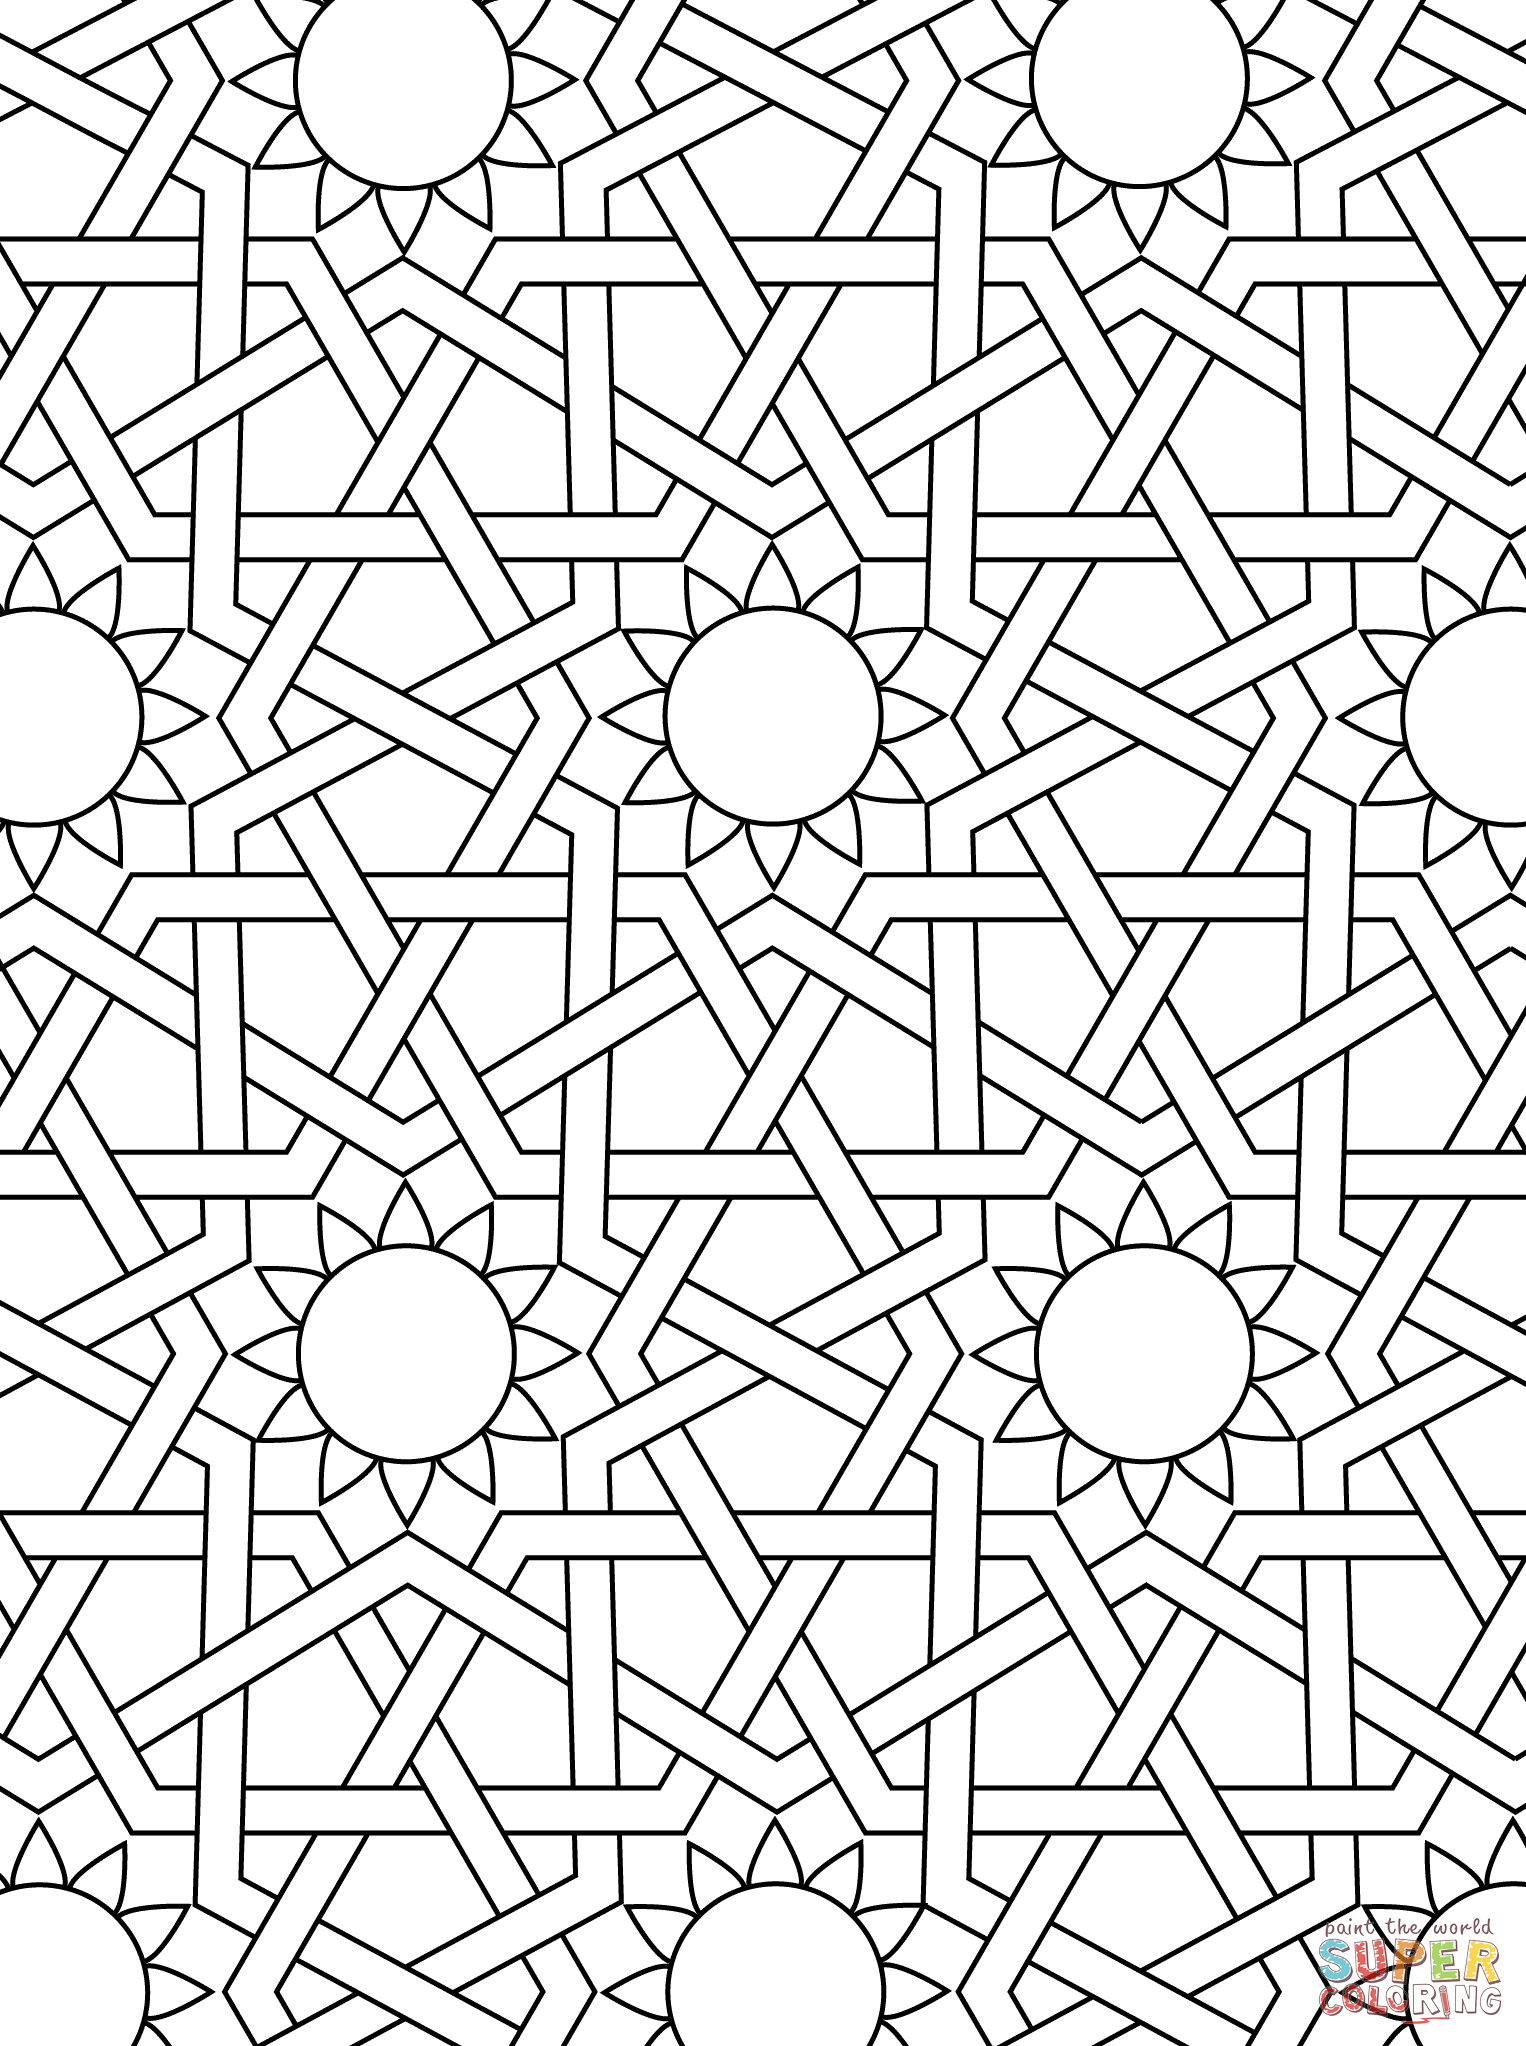 islamic ornament mosaic coloring page | art deco, tessellations